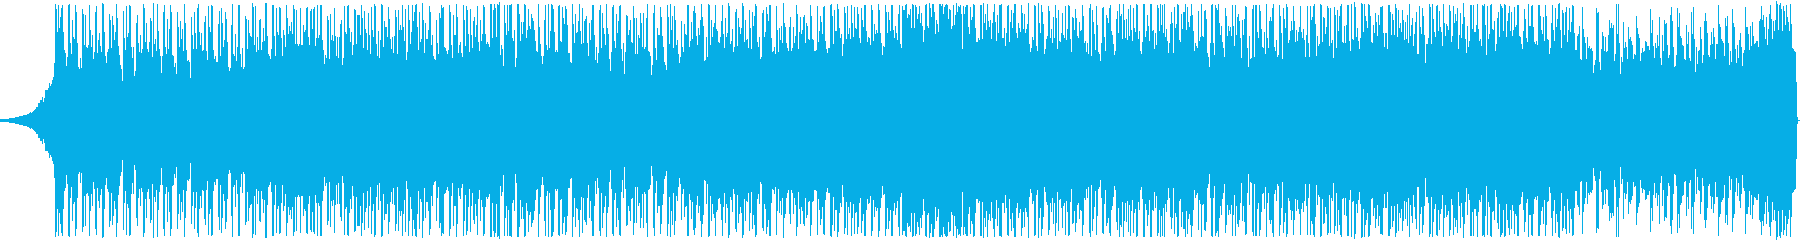 Bright and energetic EDM's reproduced waveform